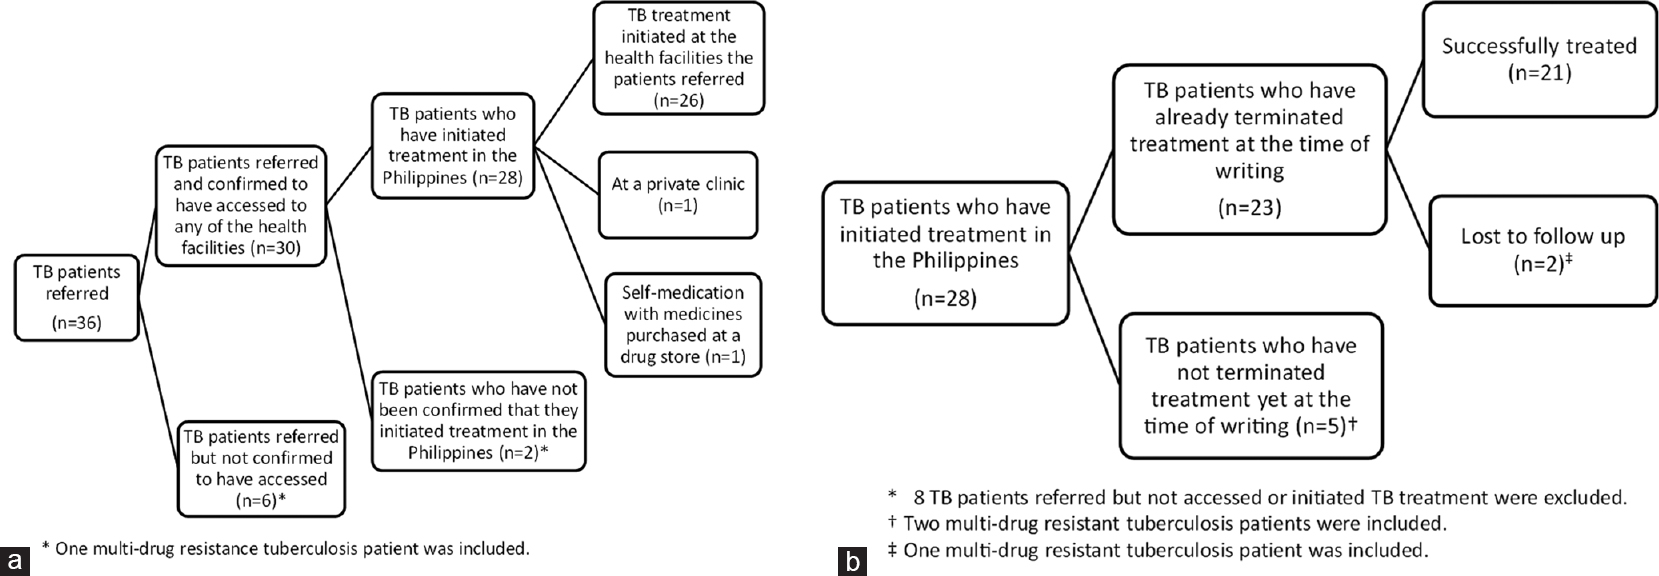 Figure 2: (a) State of the access to a health facility and treatment initiation of the 36 Filipino tuberculosis patients referred from Japan to the Philippines, 2008 to mid-2018. (b) Treatment outcomes of the Filipino tuberculosis patients referred from Japan to the Philippines and accessed to a health facility, initiated treatment in the Philippines, 2008 to mid-2018